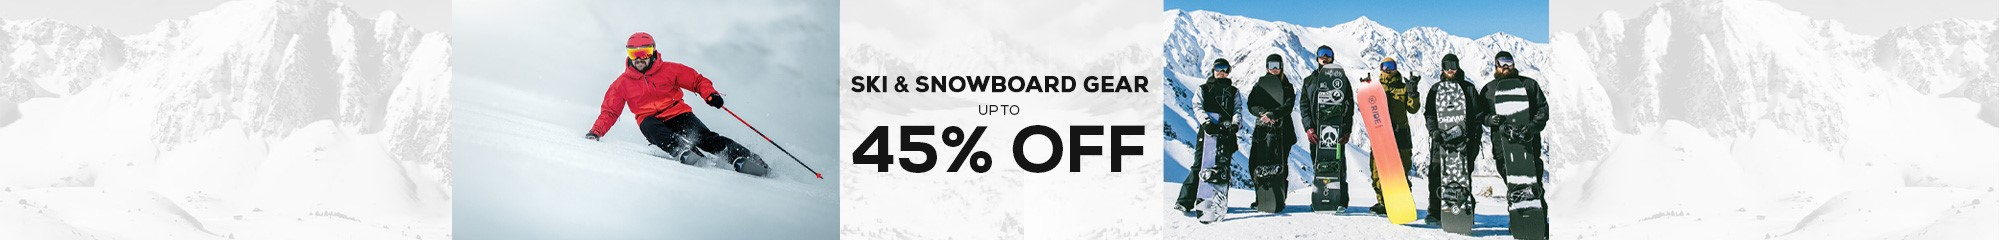 Up to 45% off ski & snowboard gear